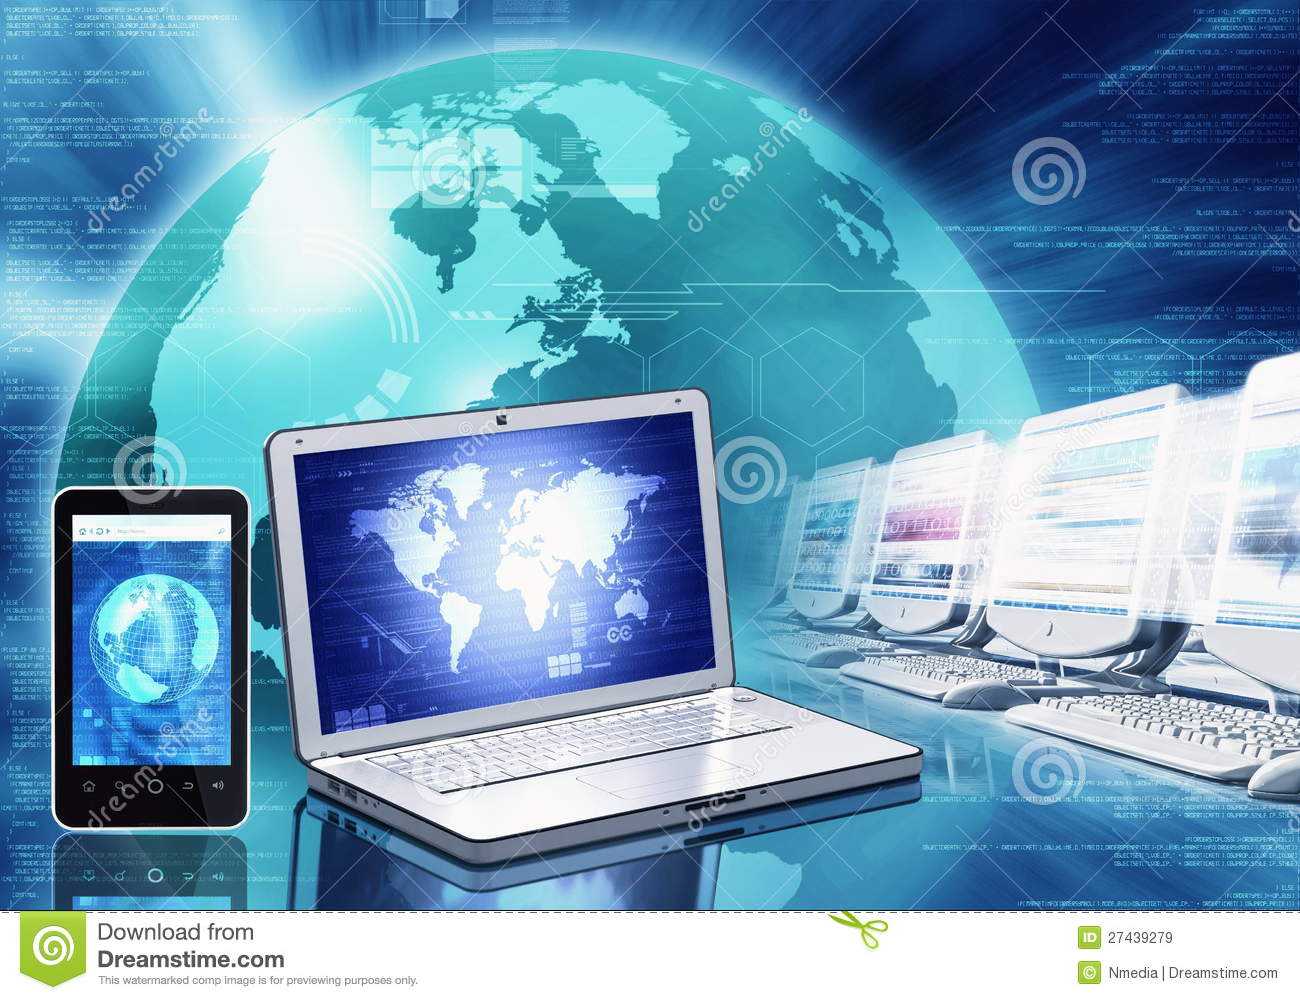 information technology gadgets Technology plays an important role in the hospitality and tourism industry both customers and businesses can benefit from advances in.